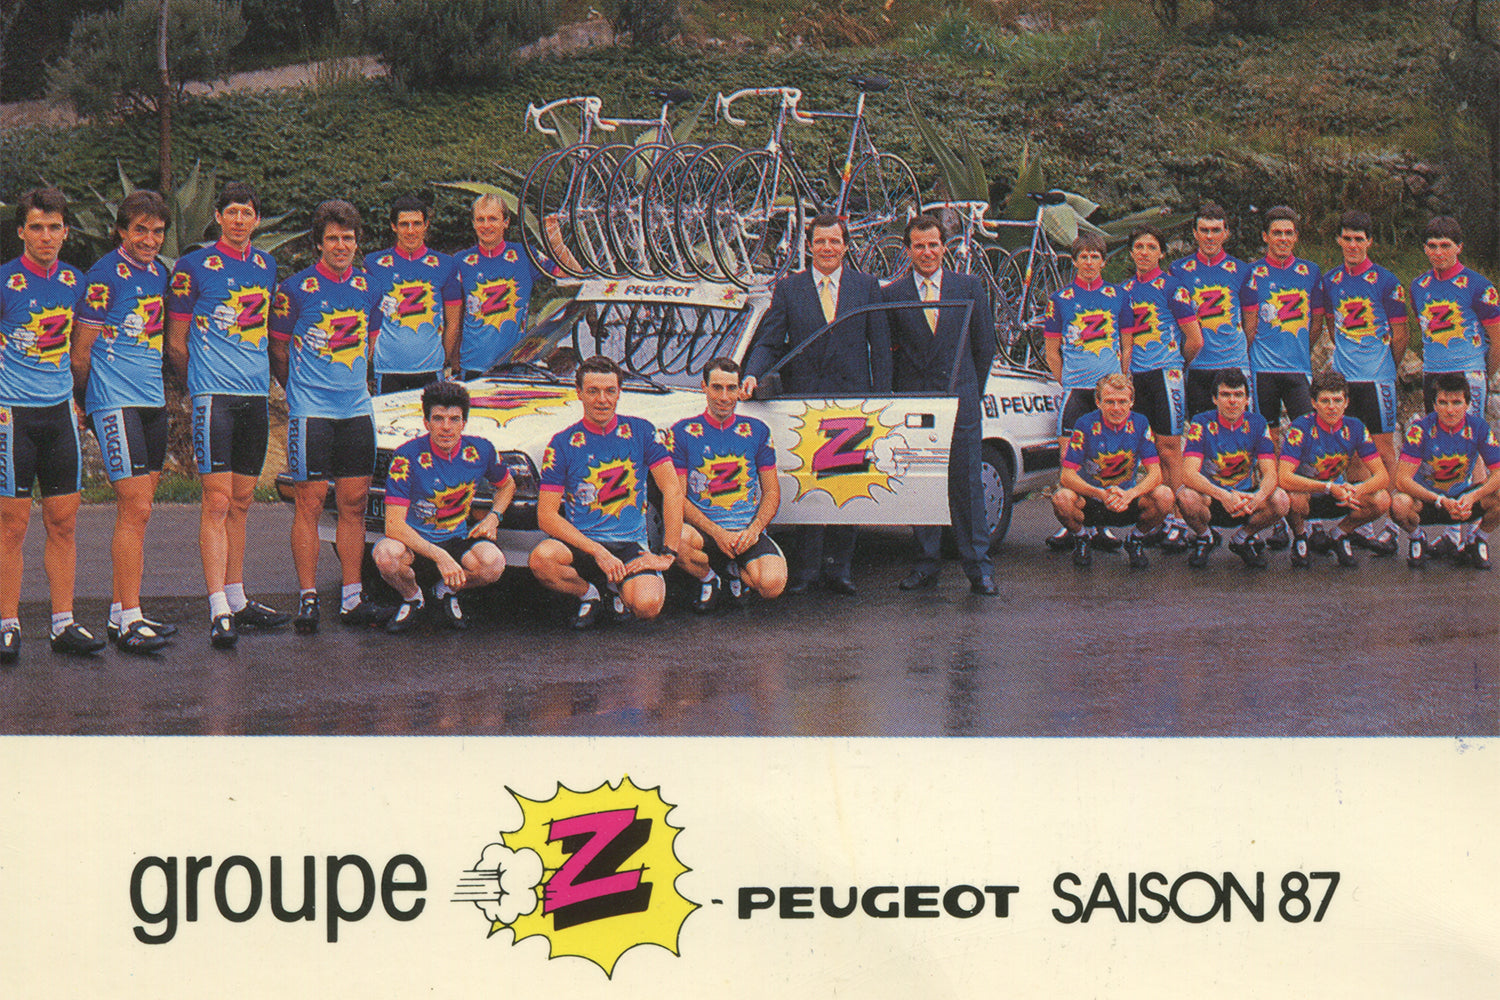 Vêtements Z-Peugeot Cycling Team postcard from 1987.